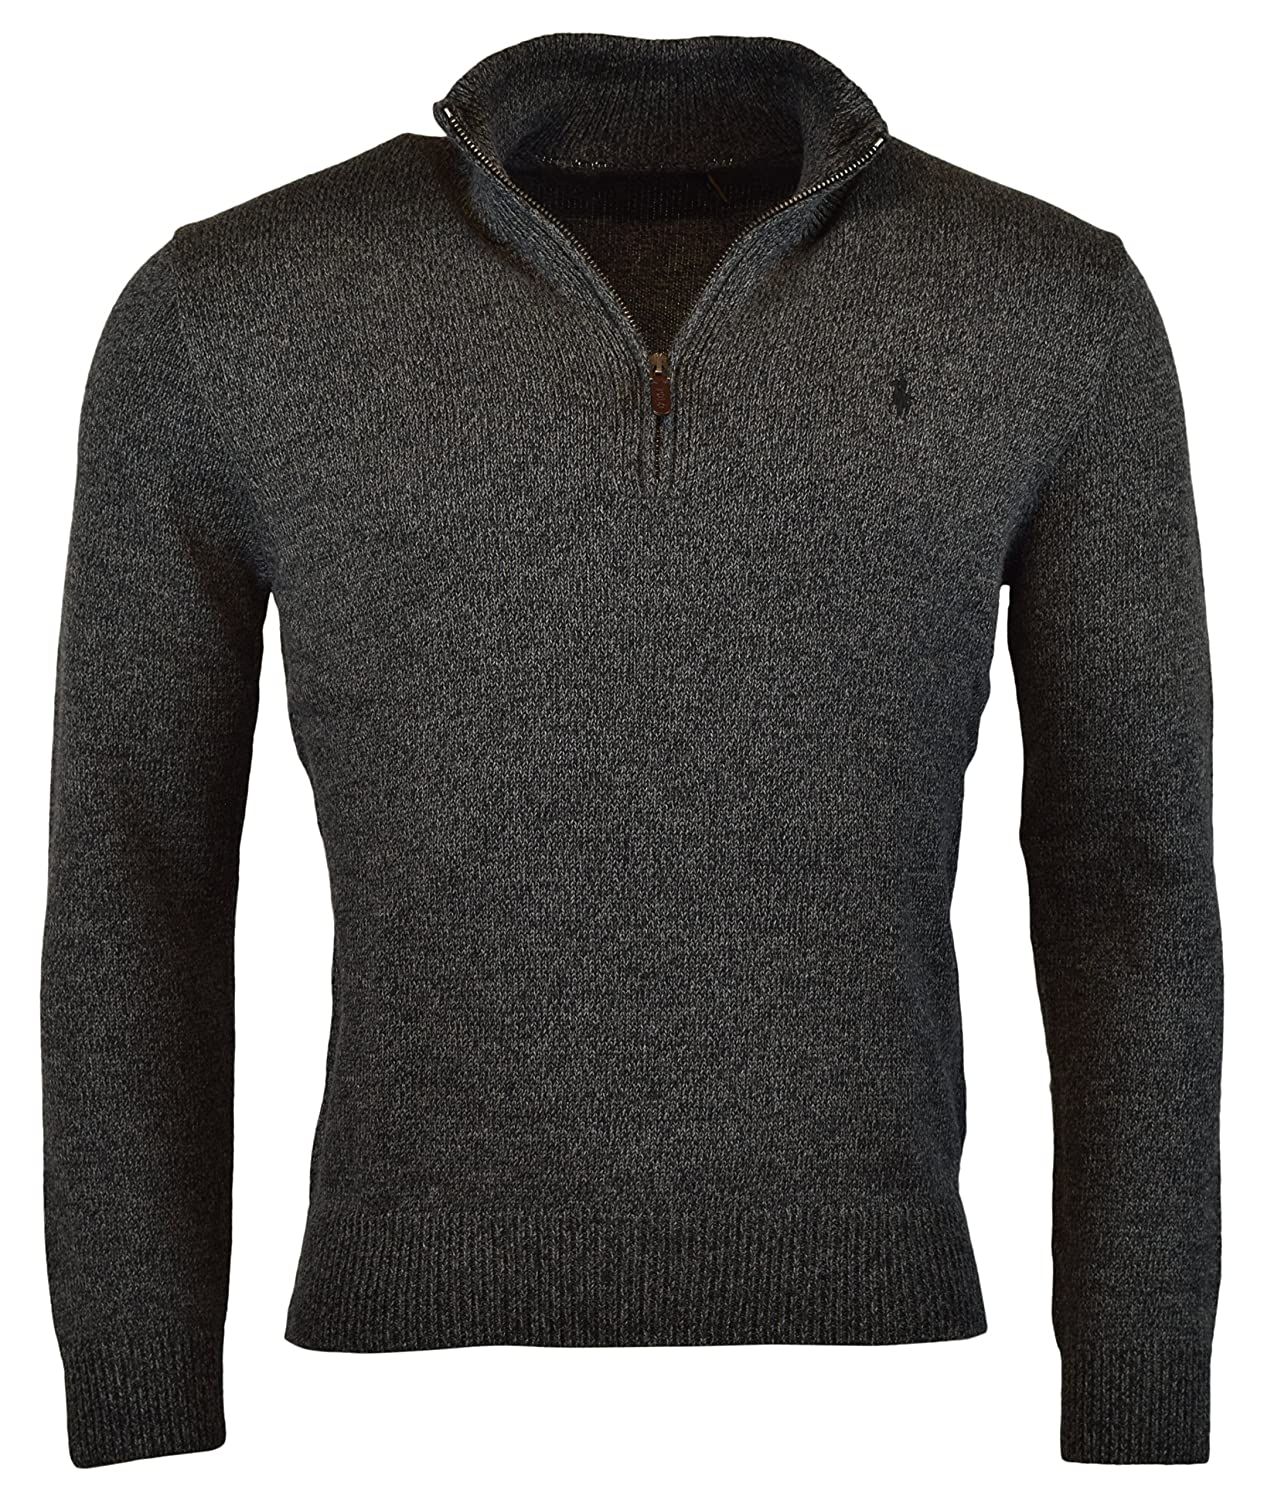 Polo Ralph Lauren Men's Half-Zip Mockneck Sweater, XXL, Charcoal